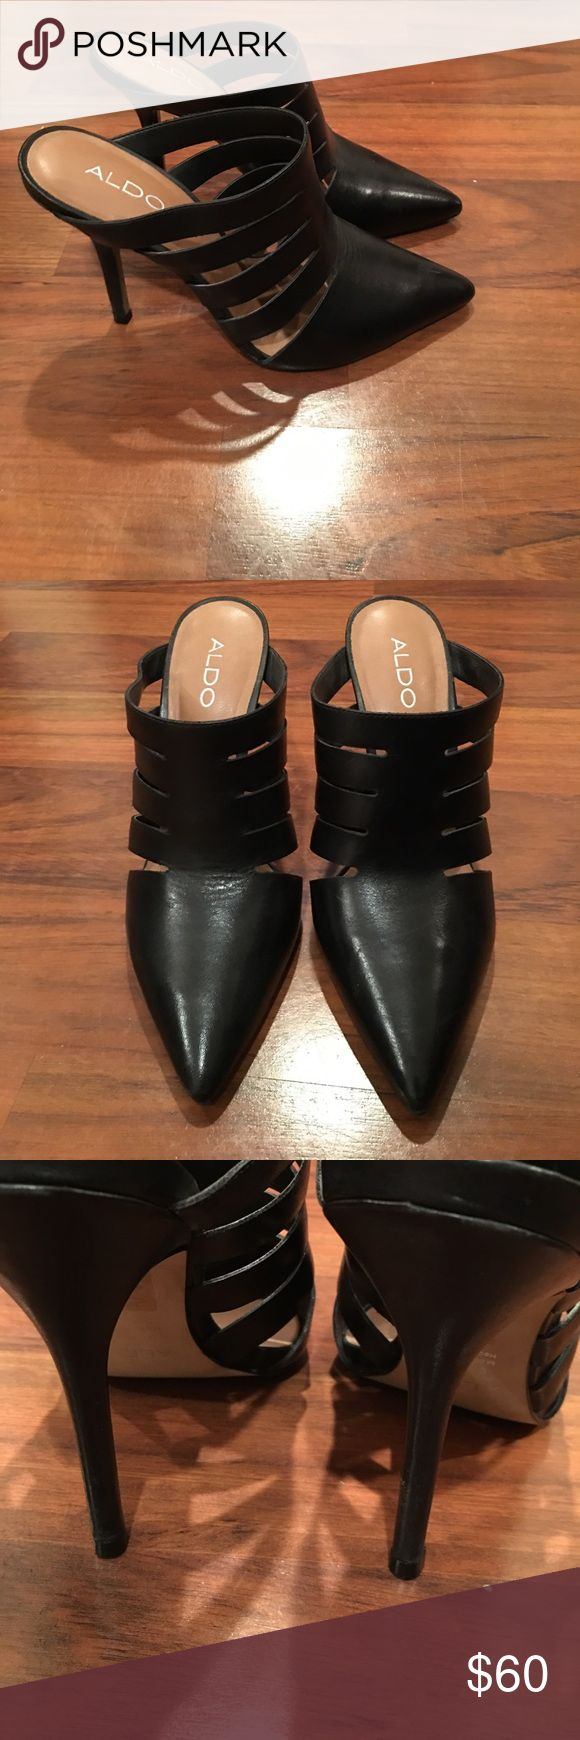 Aldo Heels Mules/ worn twice/ perfect condition Aldo Shoes Mules & Clogs